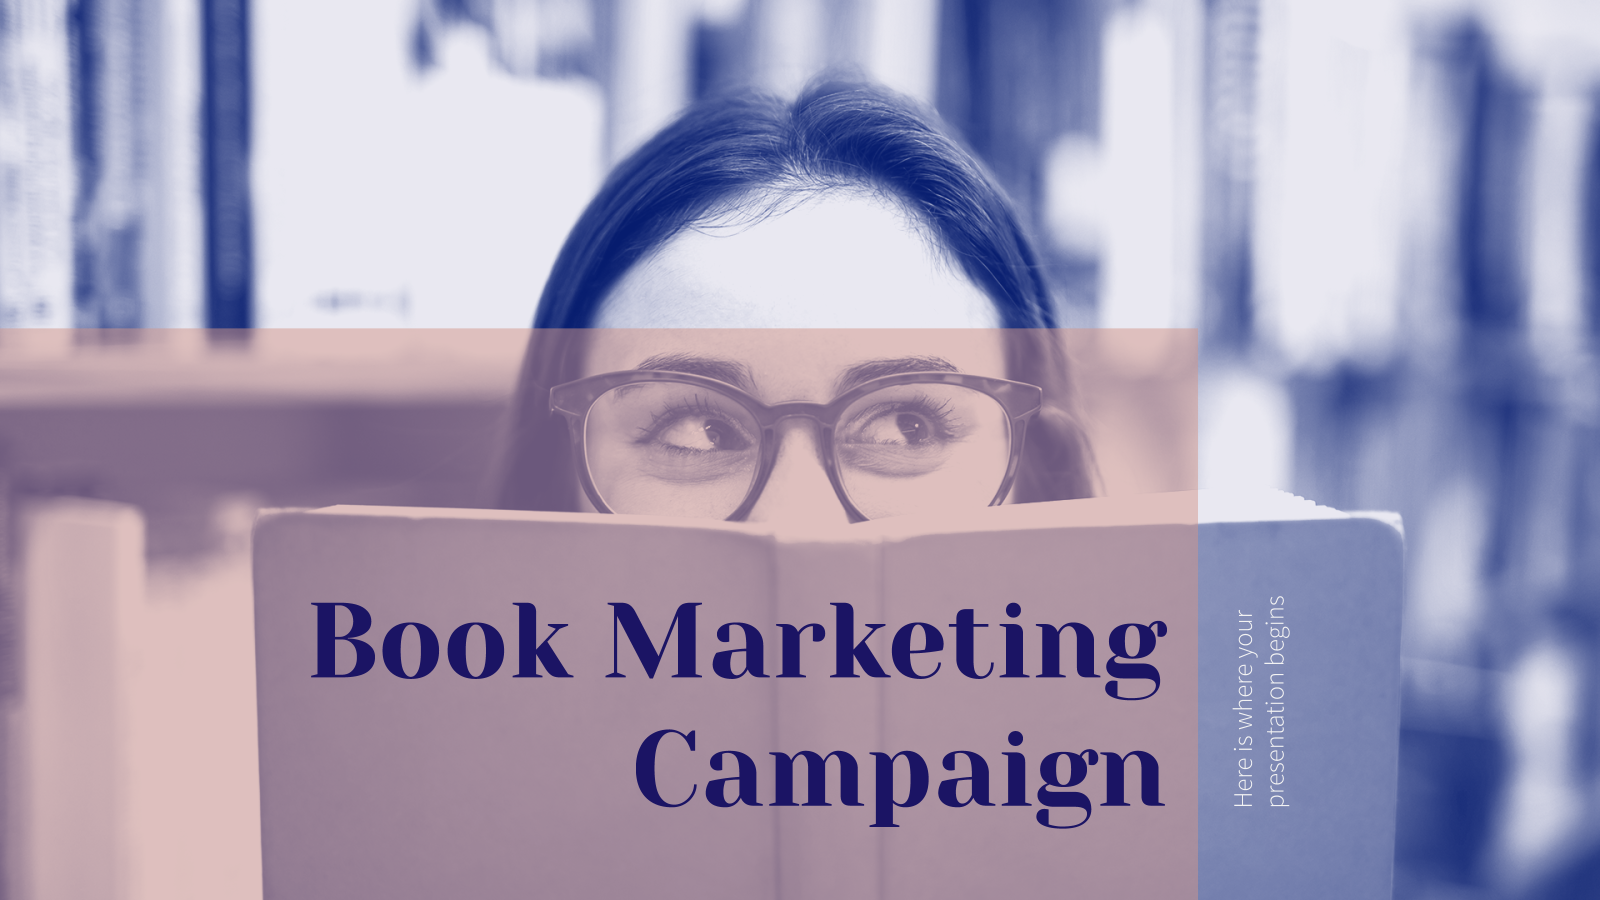 Book Marketing Campaign presentation template